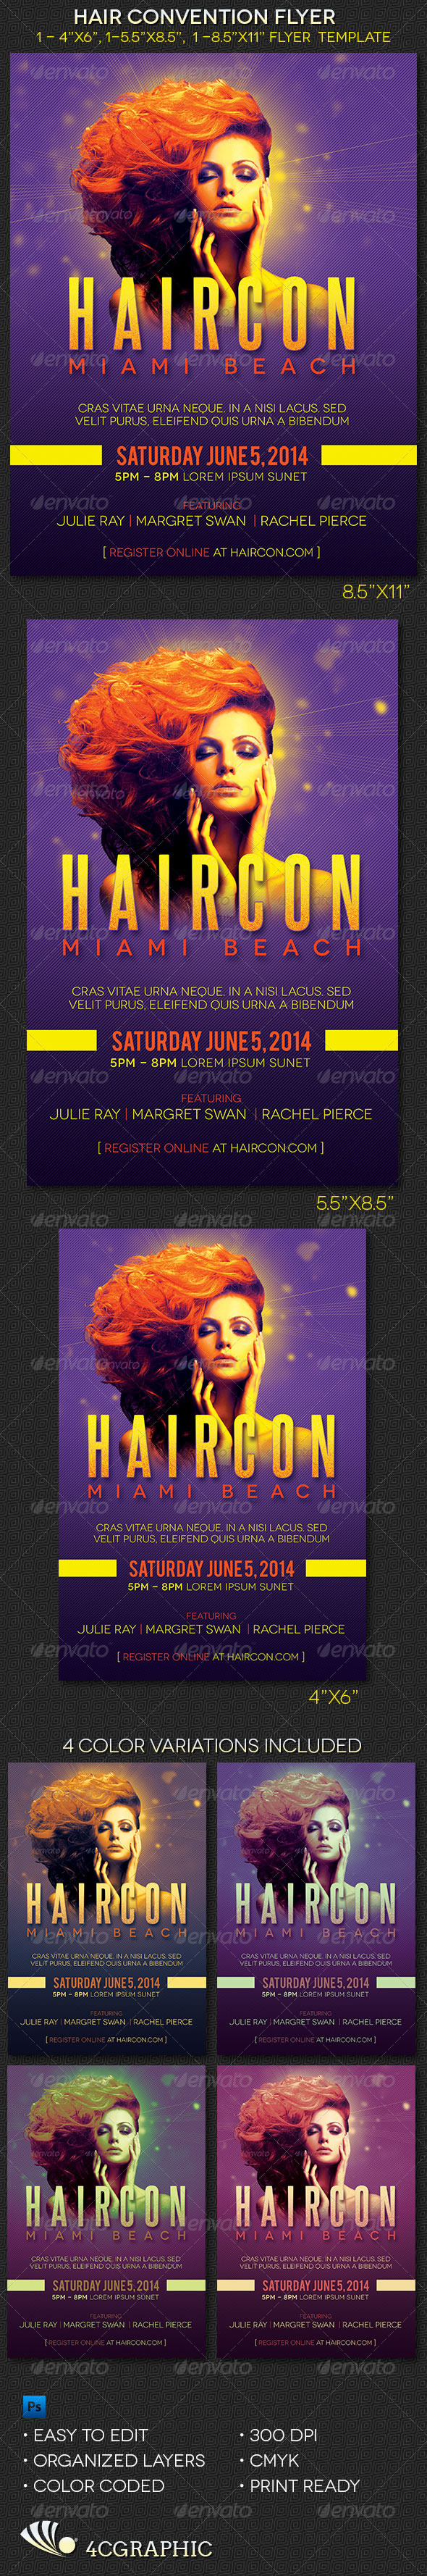 Hair Convention  Flyer Template - Events Flyers